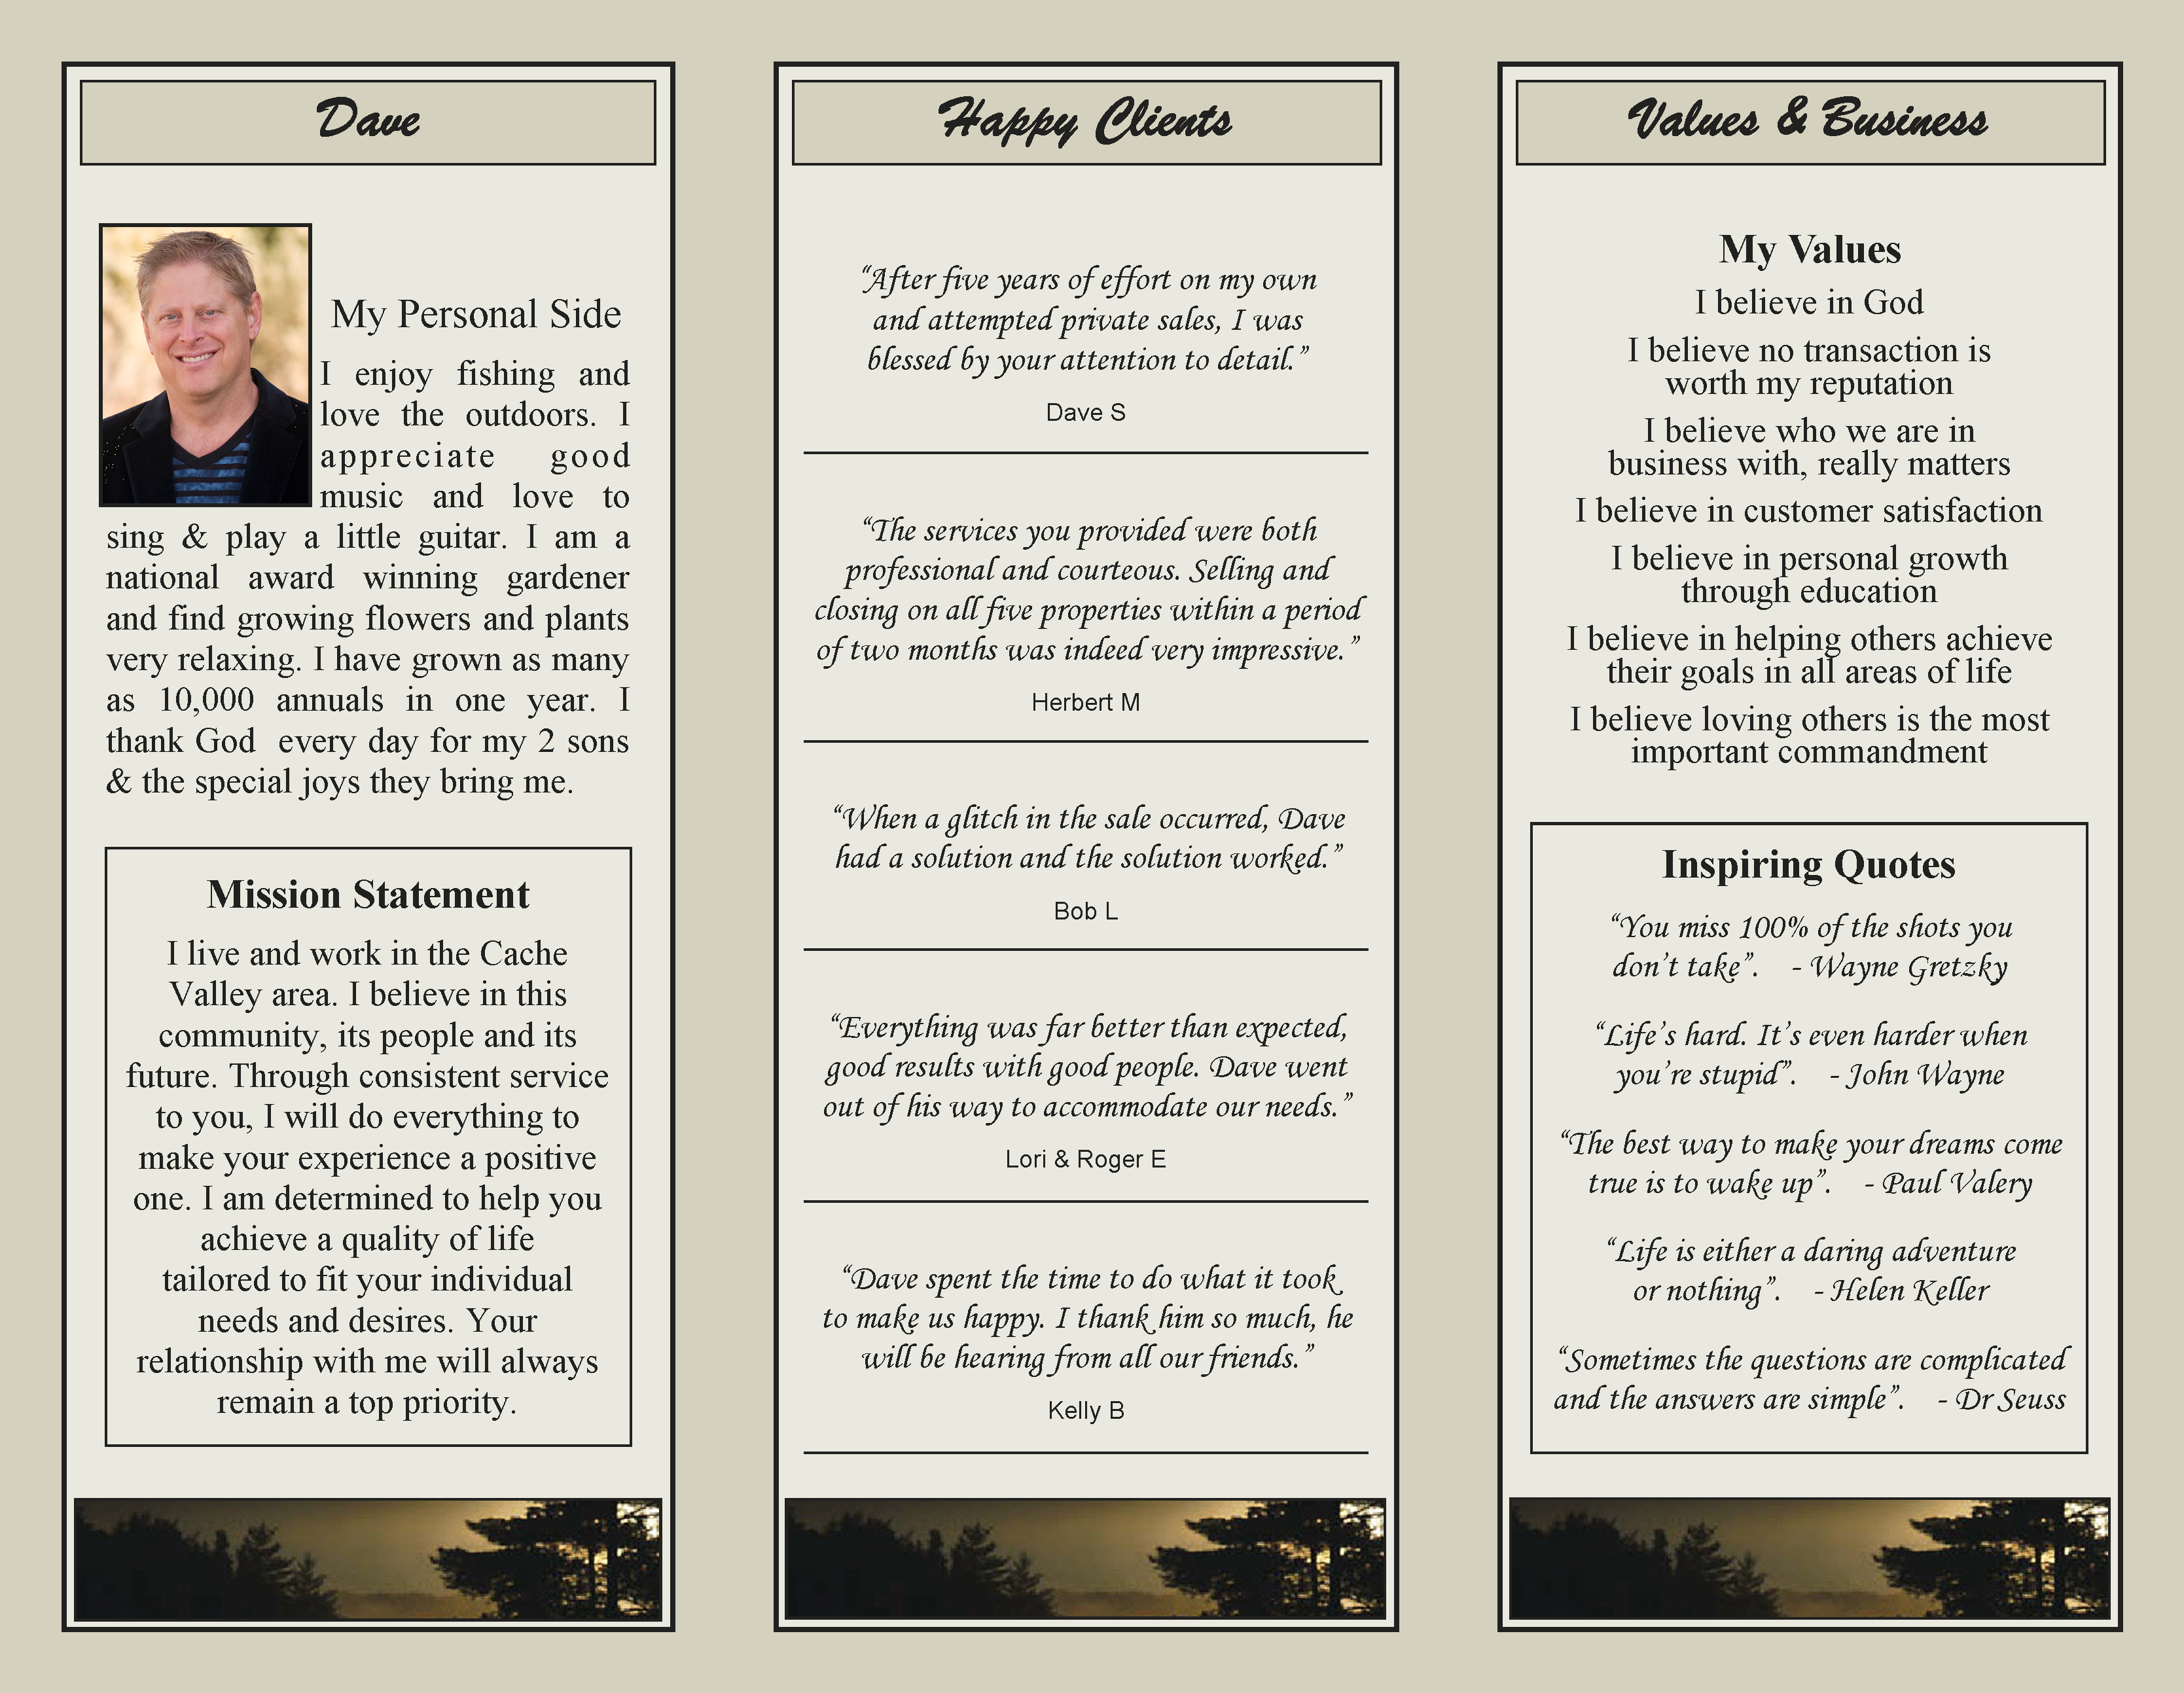 Personal Brochure page 2